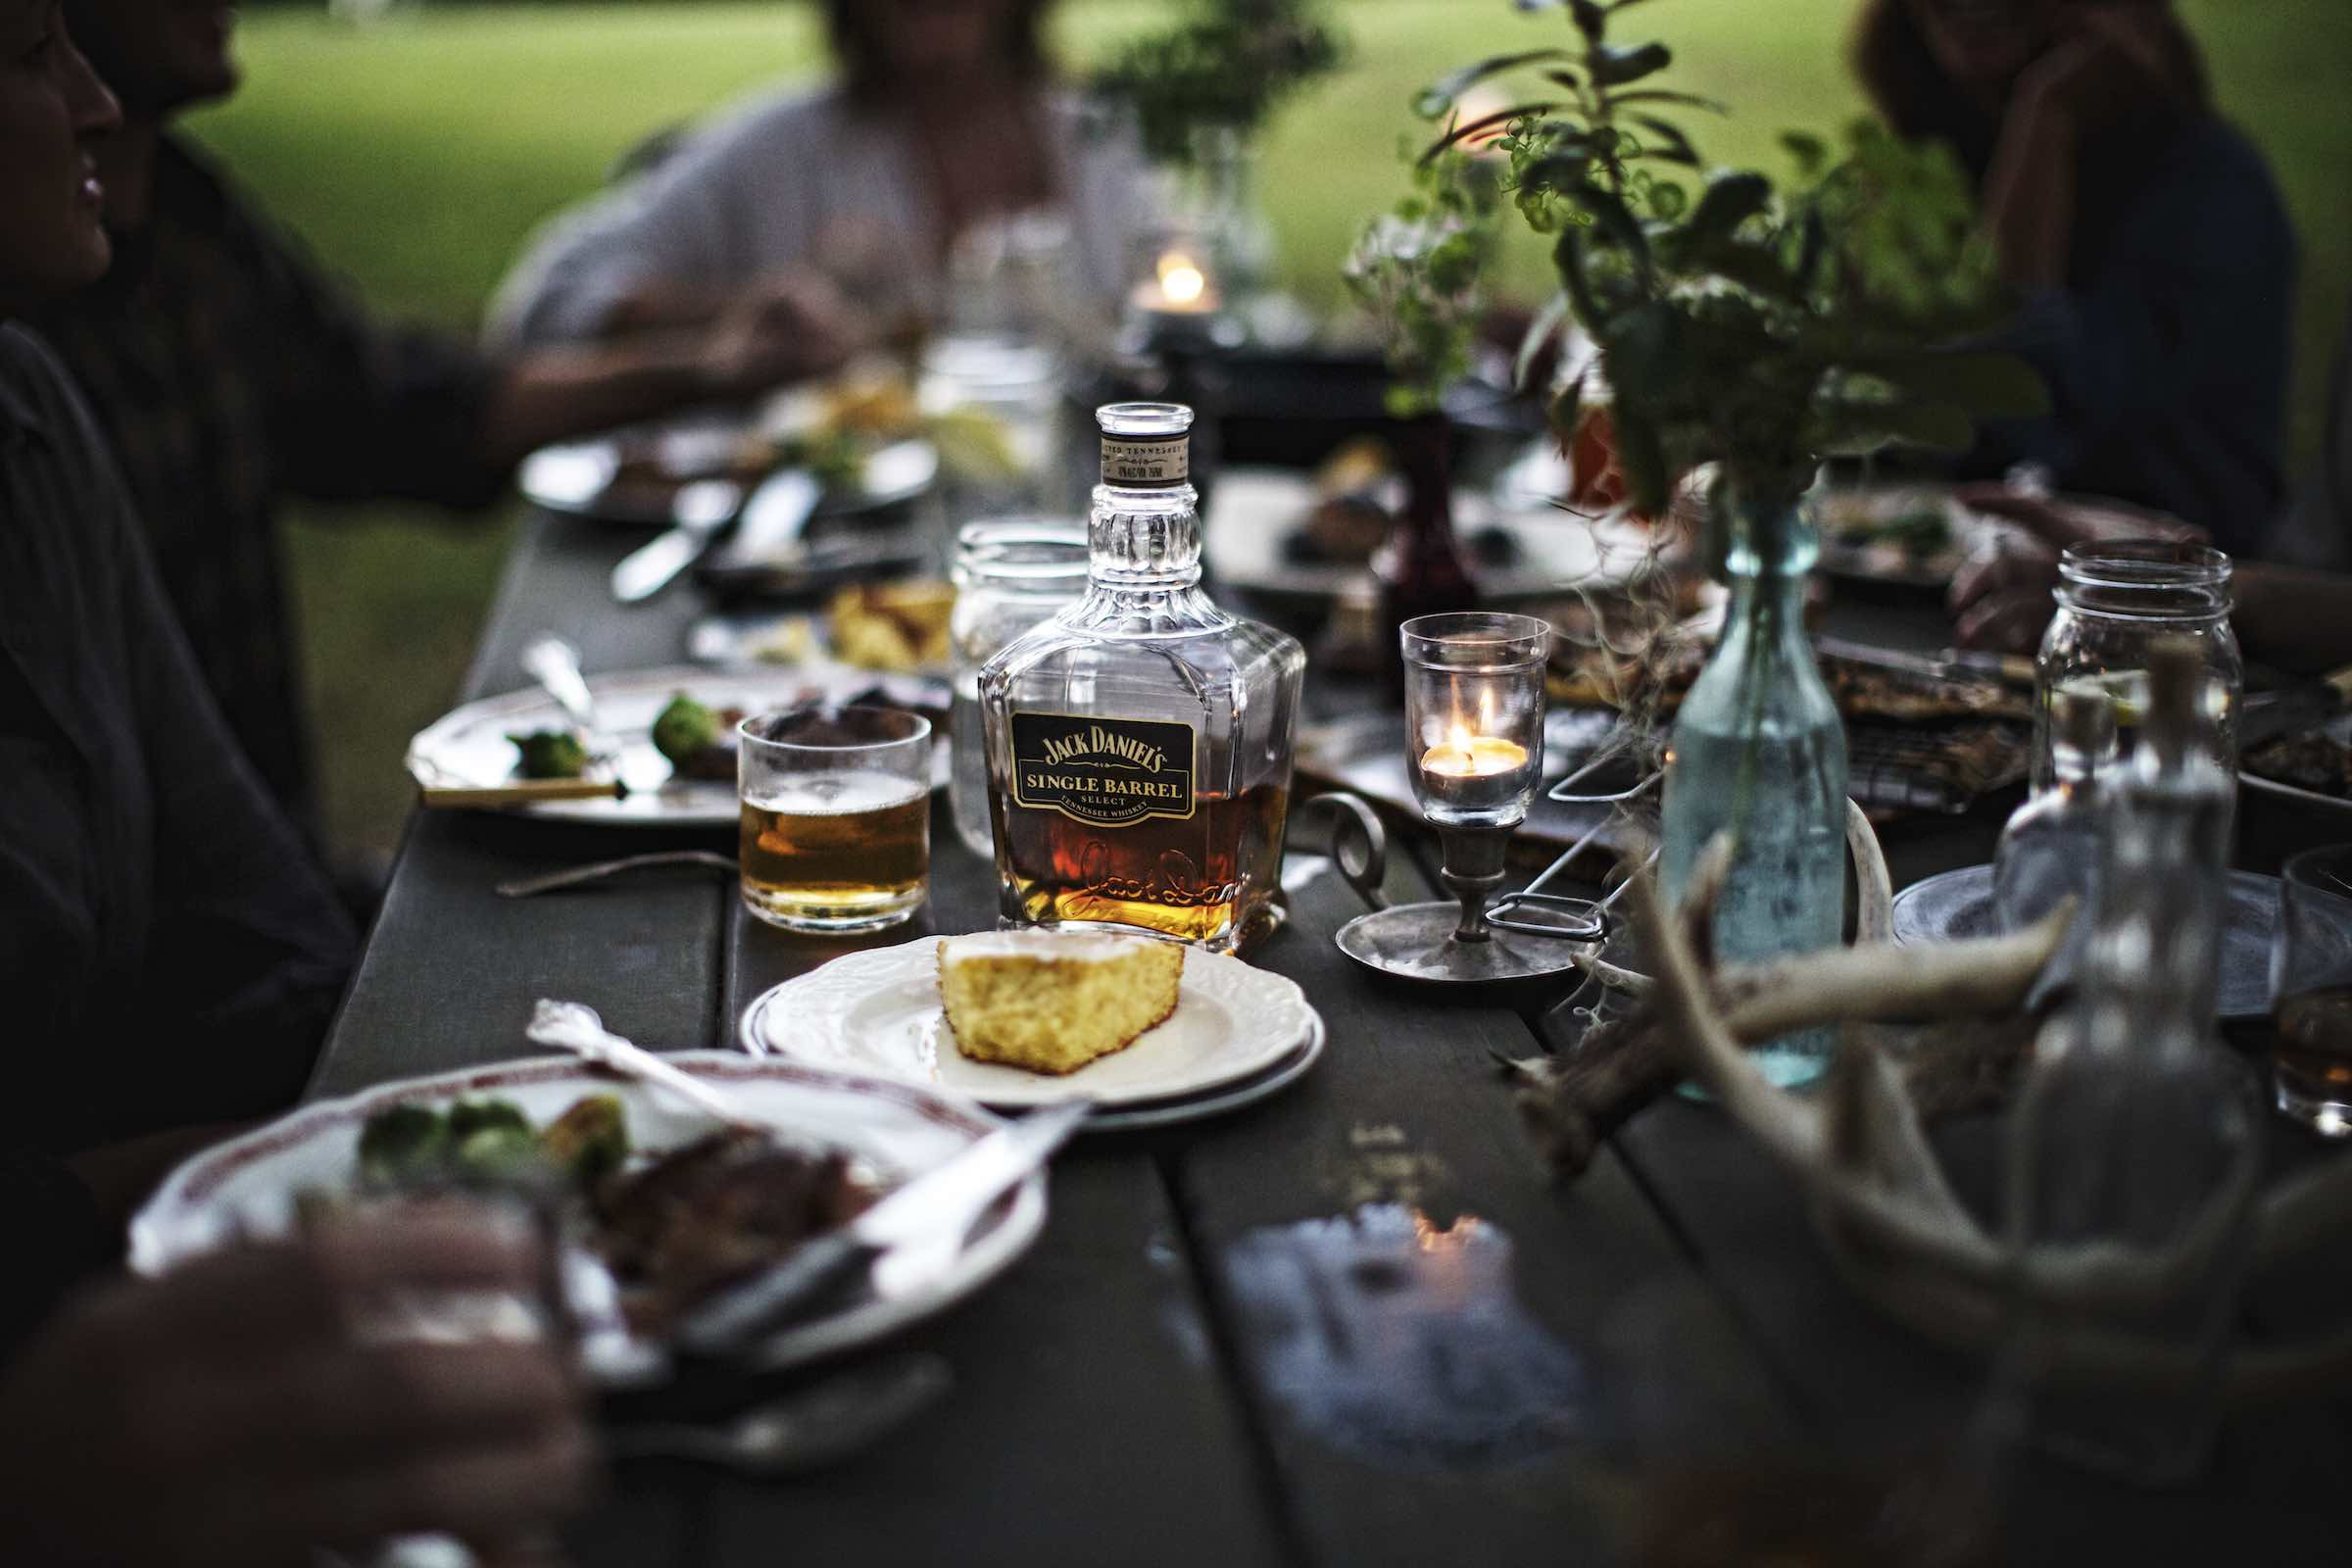 Jody Horton Photography - Candlelit dinner scene with Jack Daniel